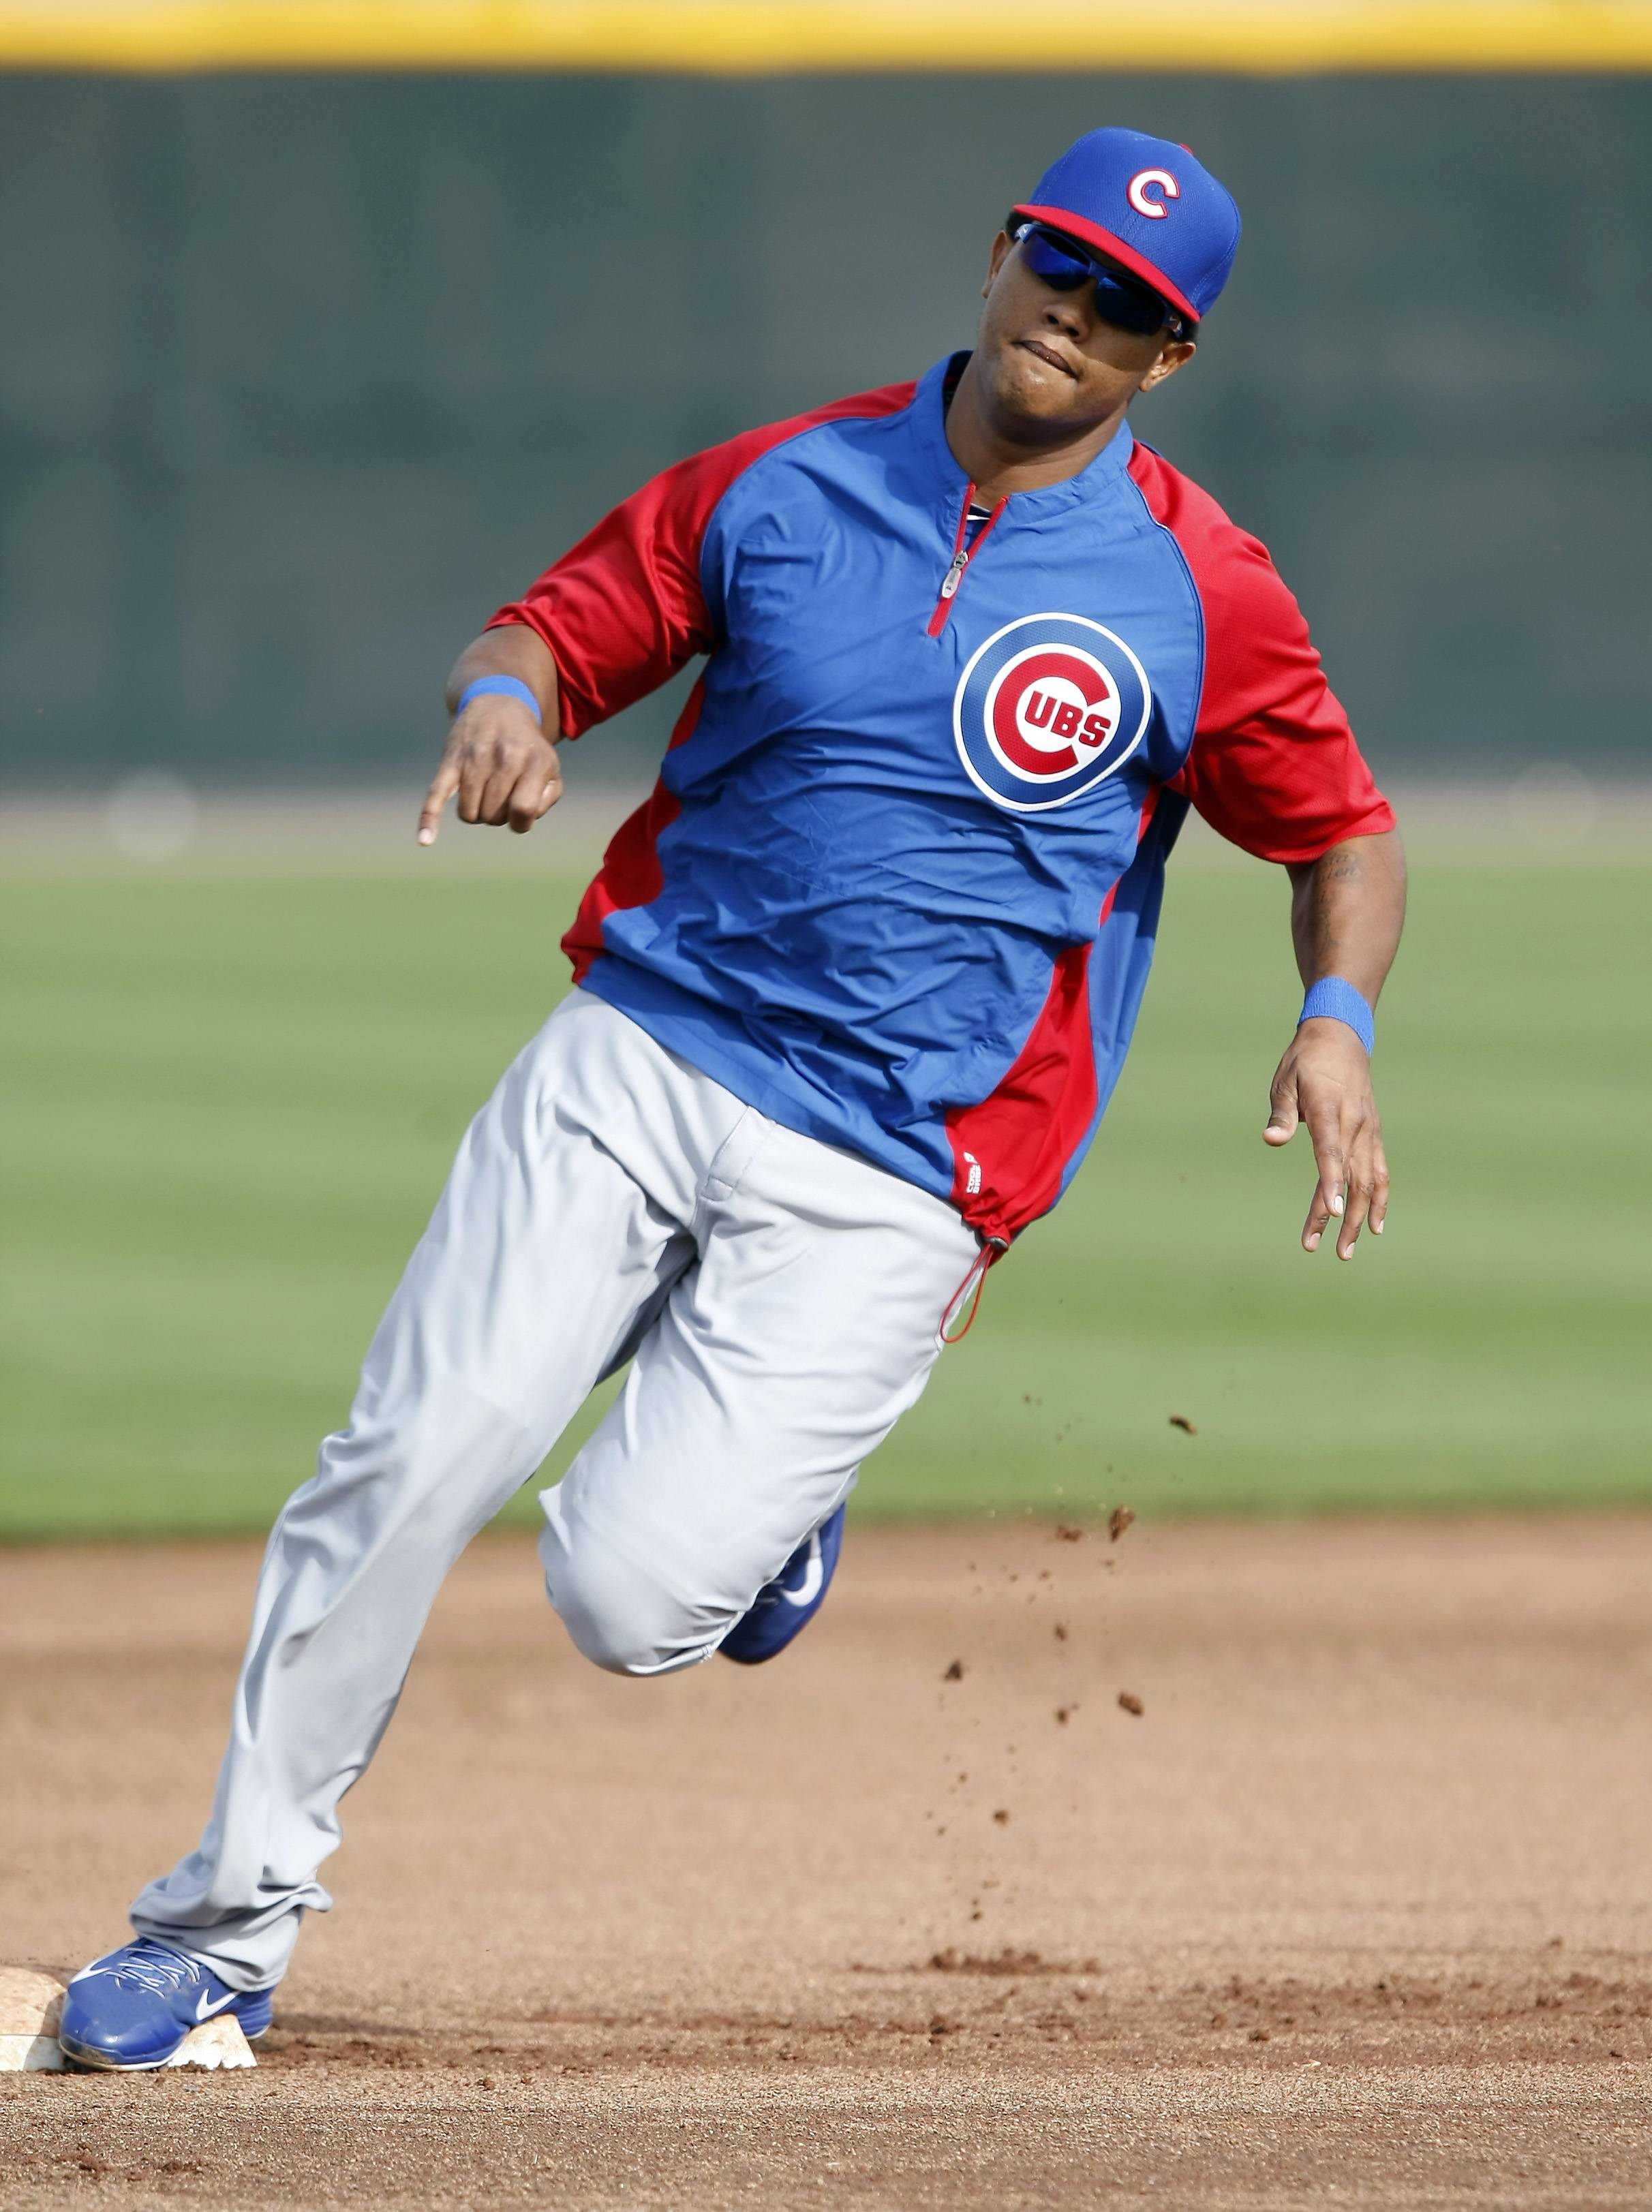 Cubs shortstop Starlin Castro runs the bases during spring-training practice in Mesa, Ariz.